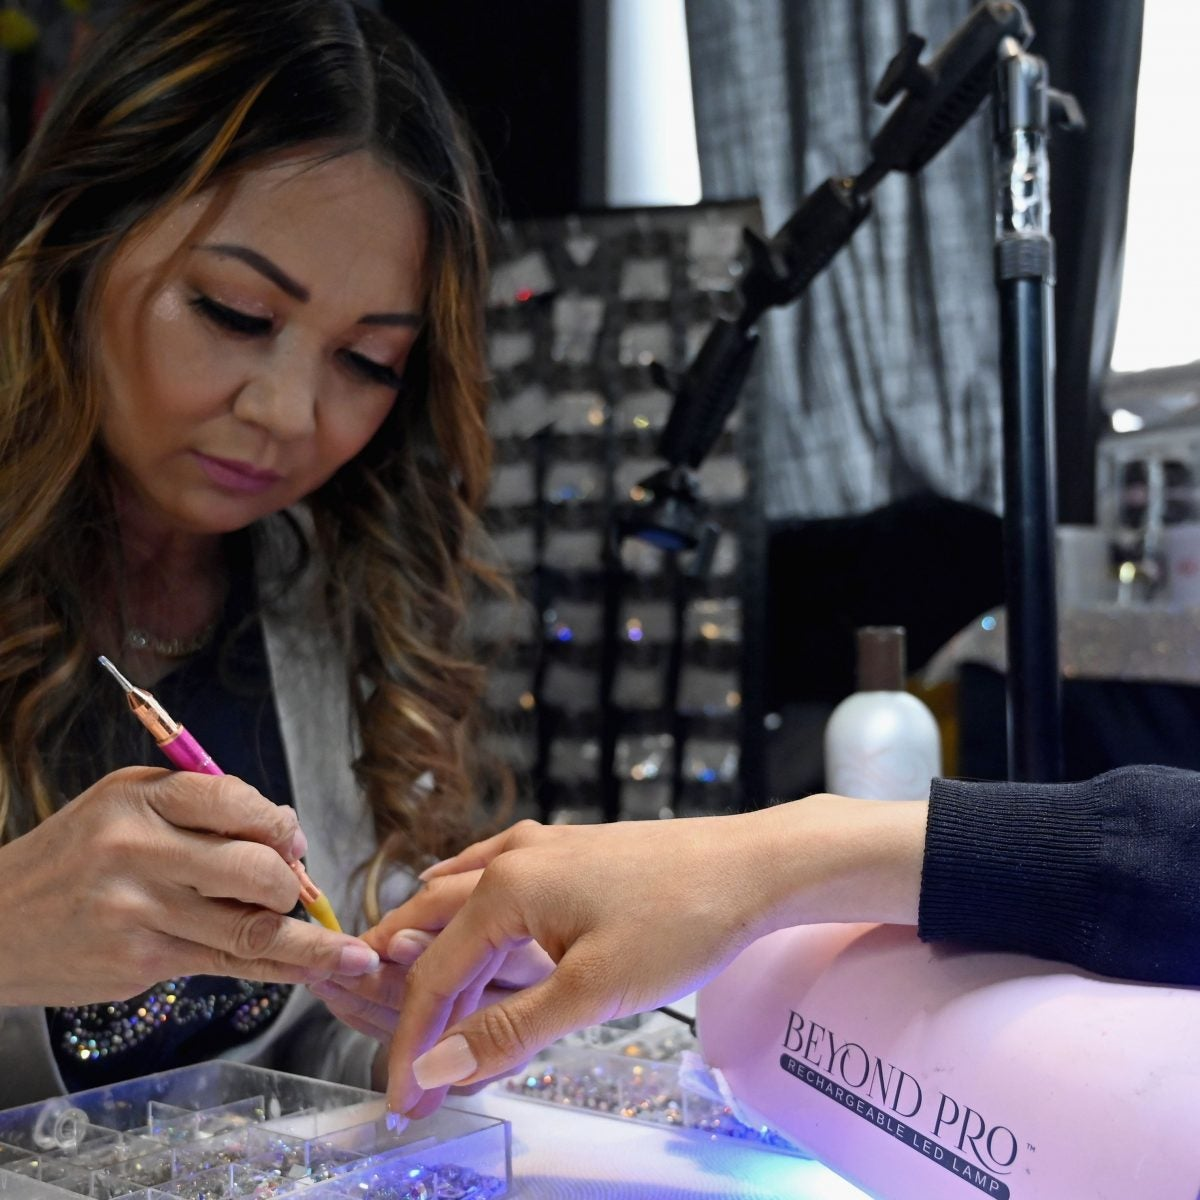 Cardi B's Nail Tech Created A Line Of Press-On Nails That Are Blinging